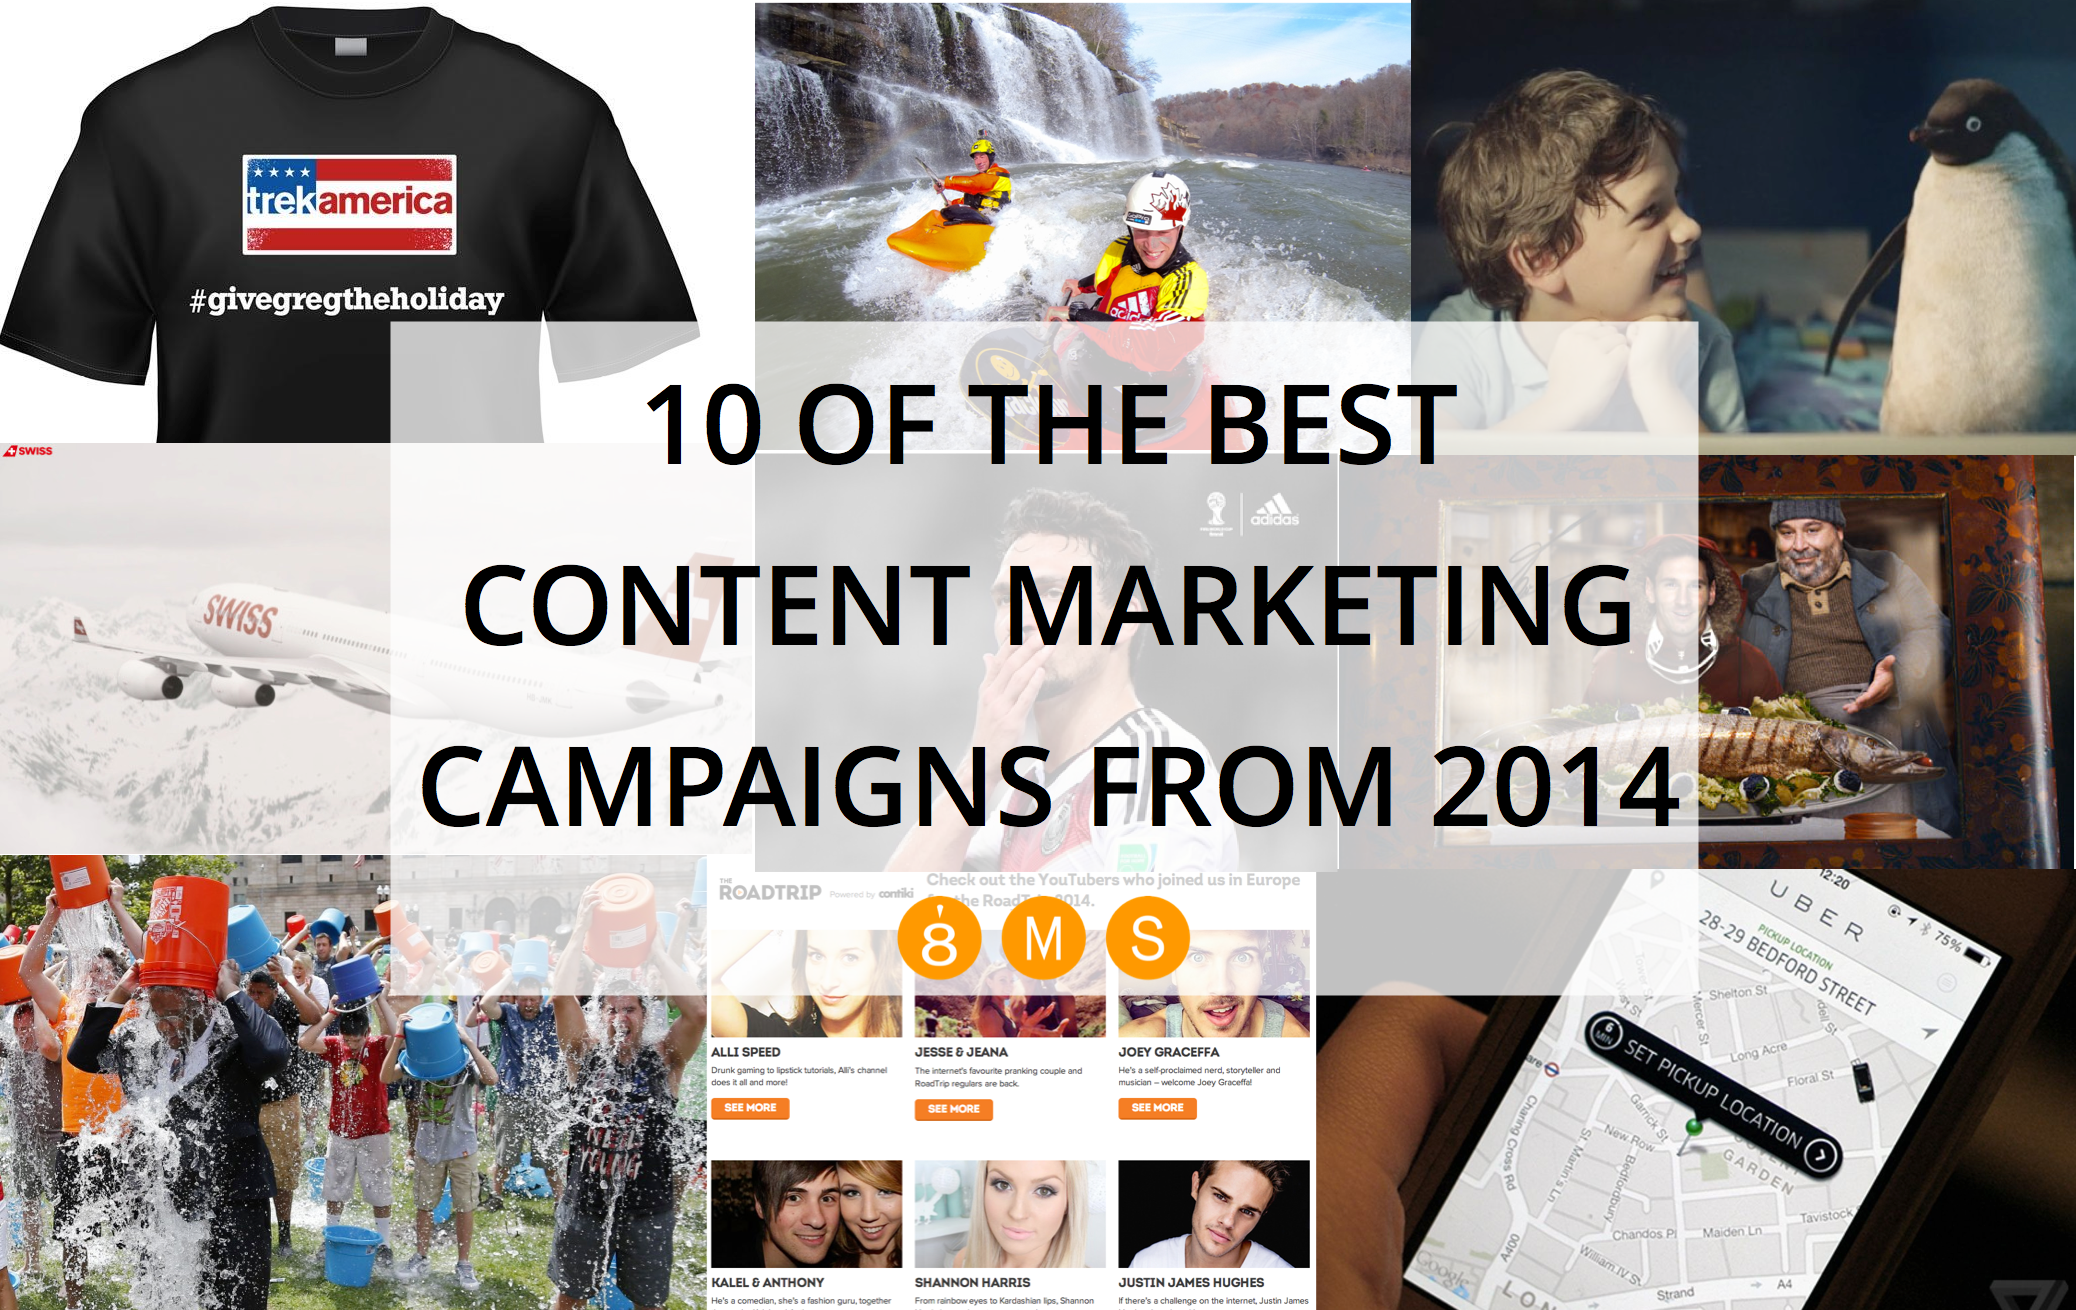 10 Of The Best Content Marketing Campaigns From 2014 - 8MS